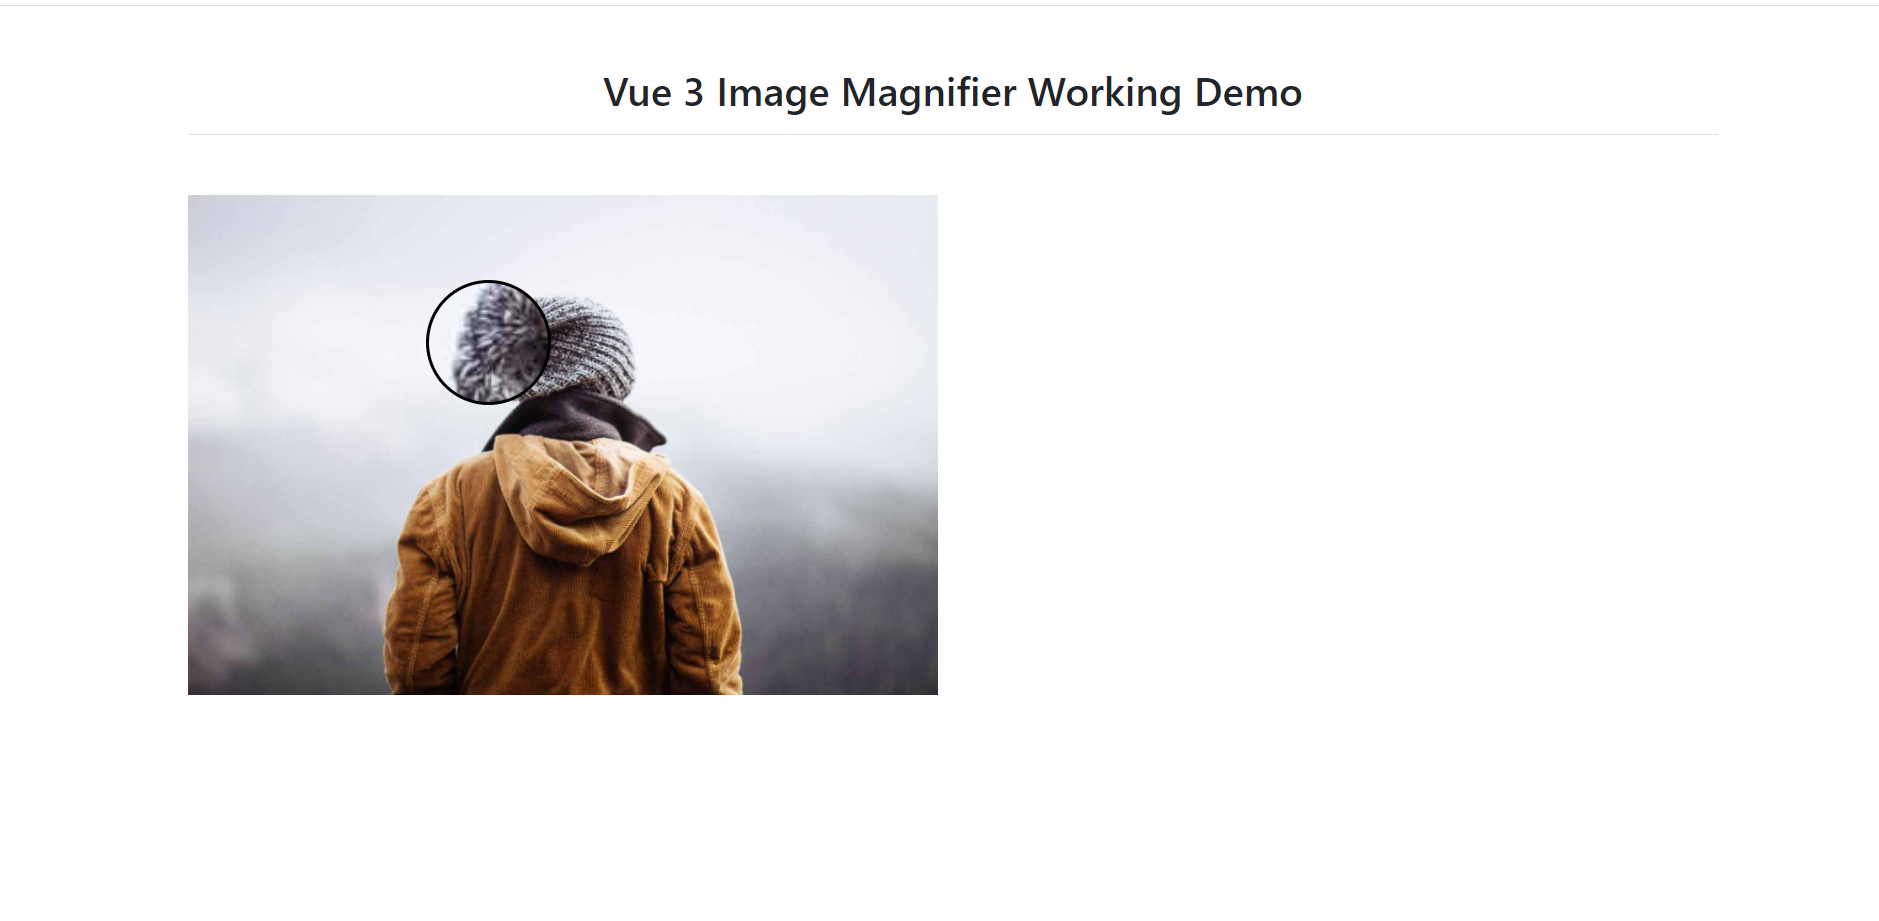 Vue 3 Image Magnifier Working Functionality - Therichpost